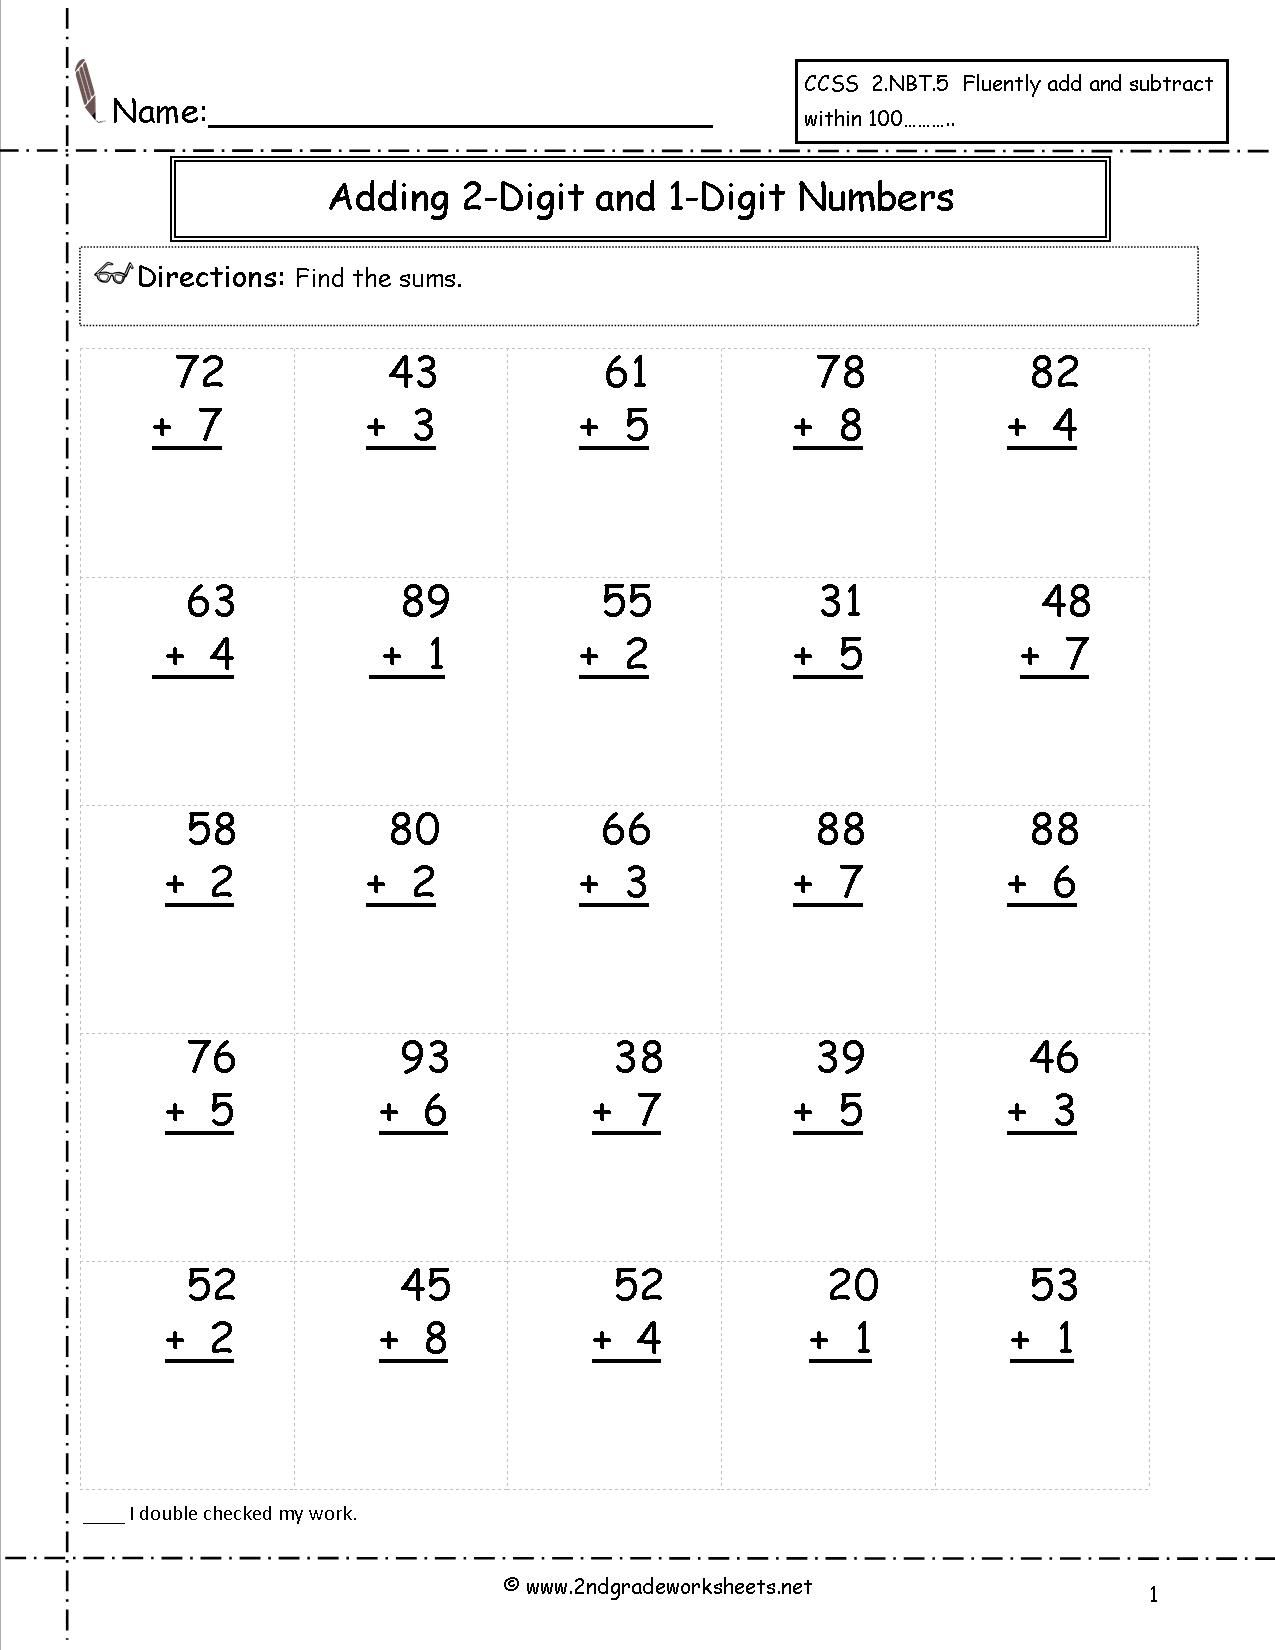 adding two digit and one digit numbers | satta | Pinterest